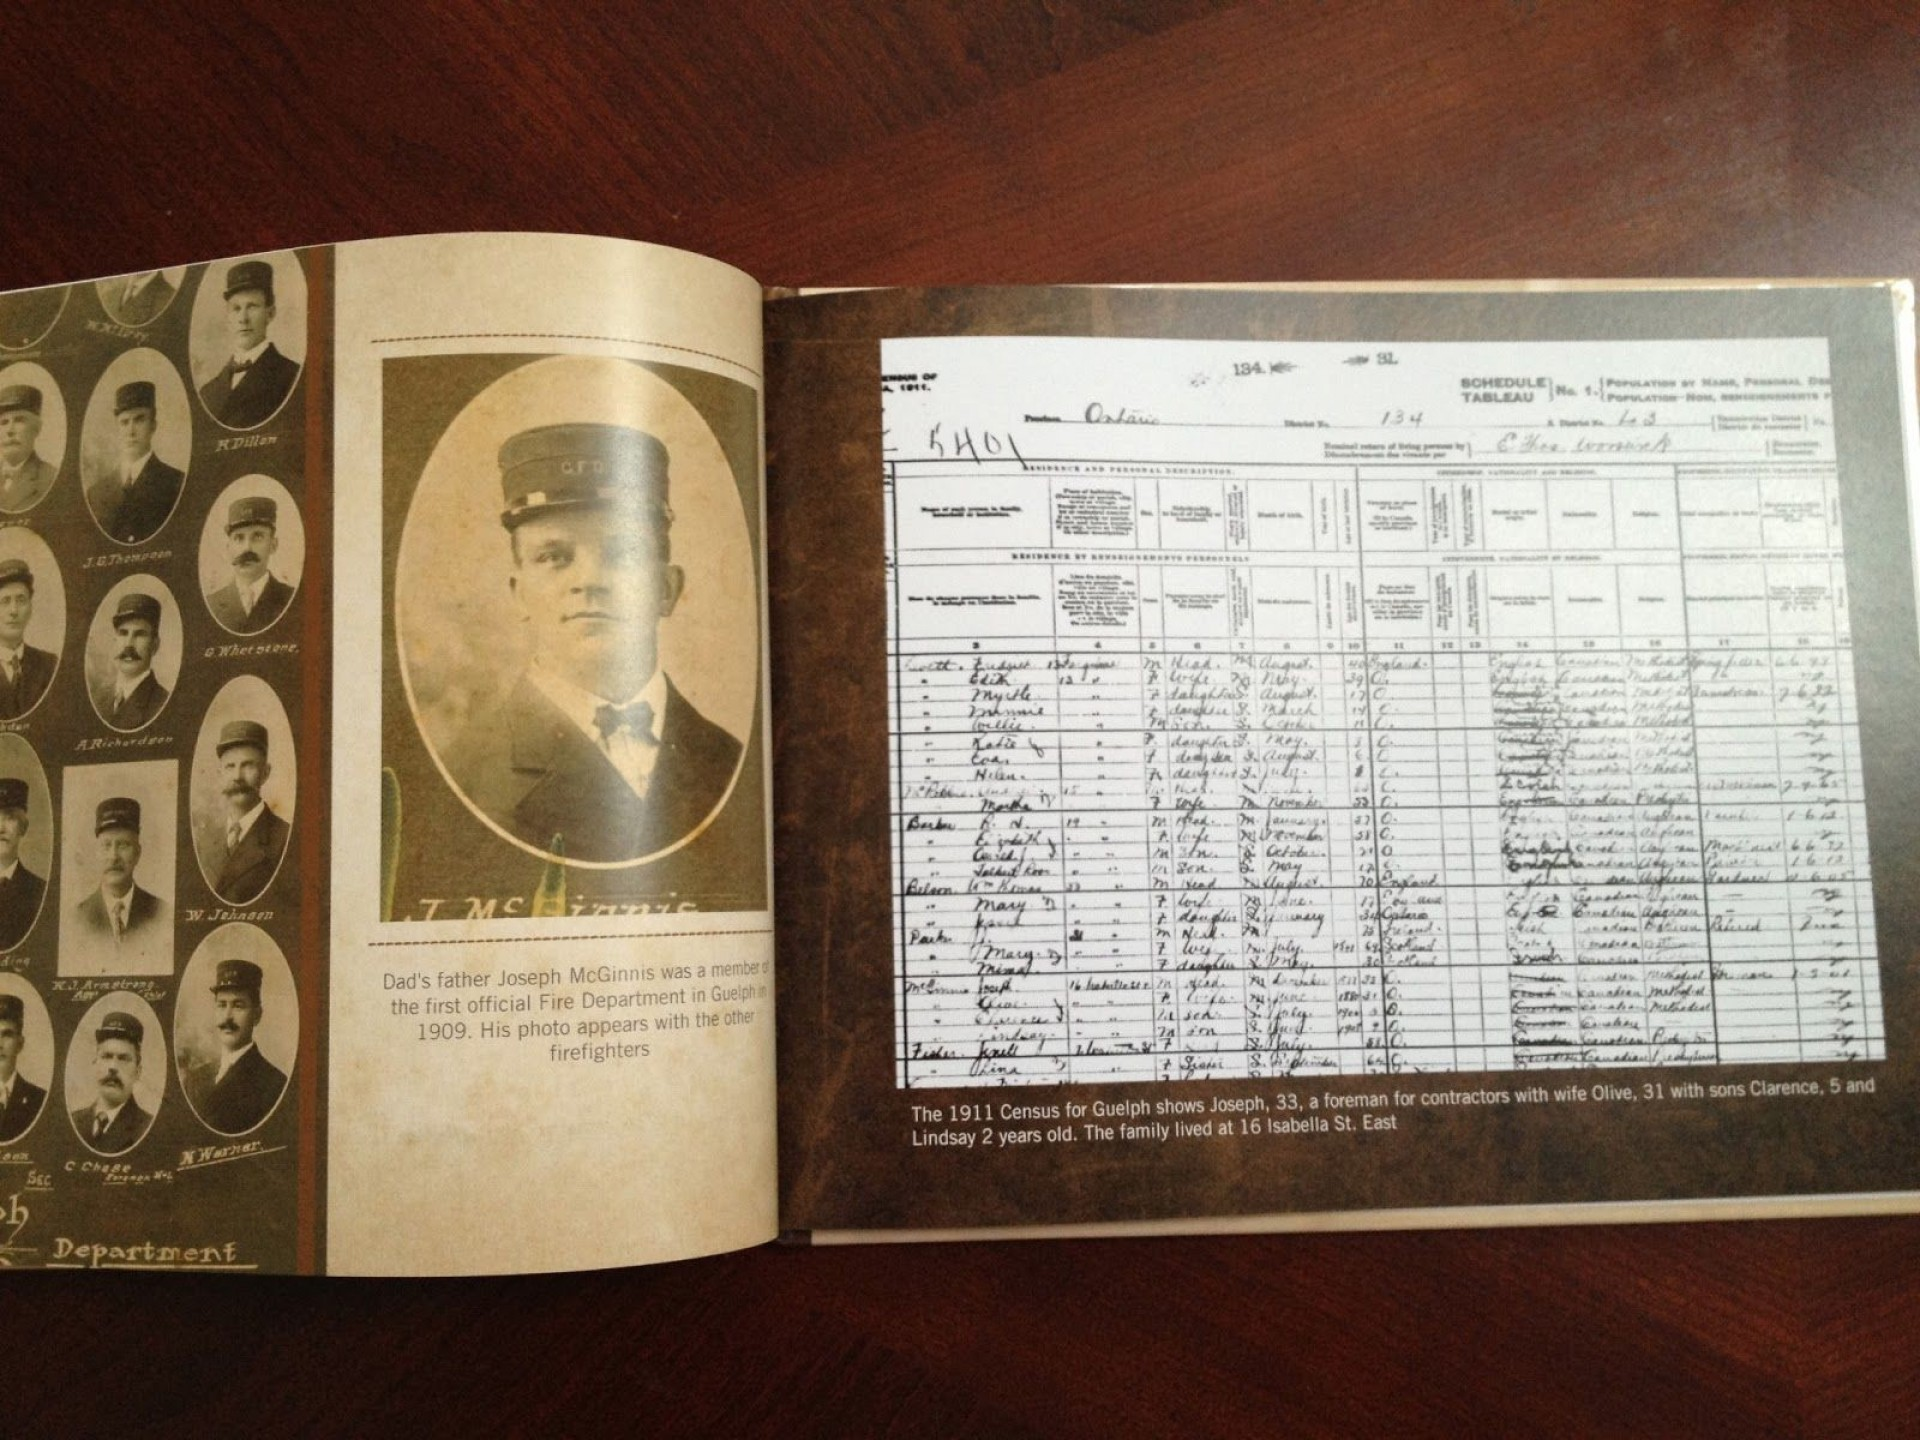 000 Staggering Family Tree Book Template Picture  Photo Free1920